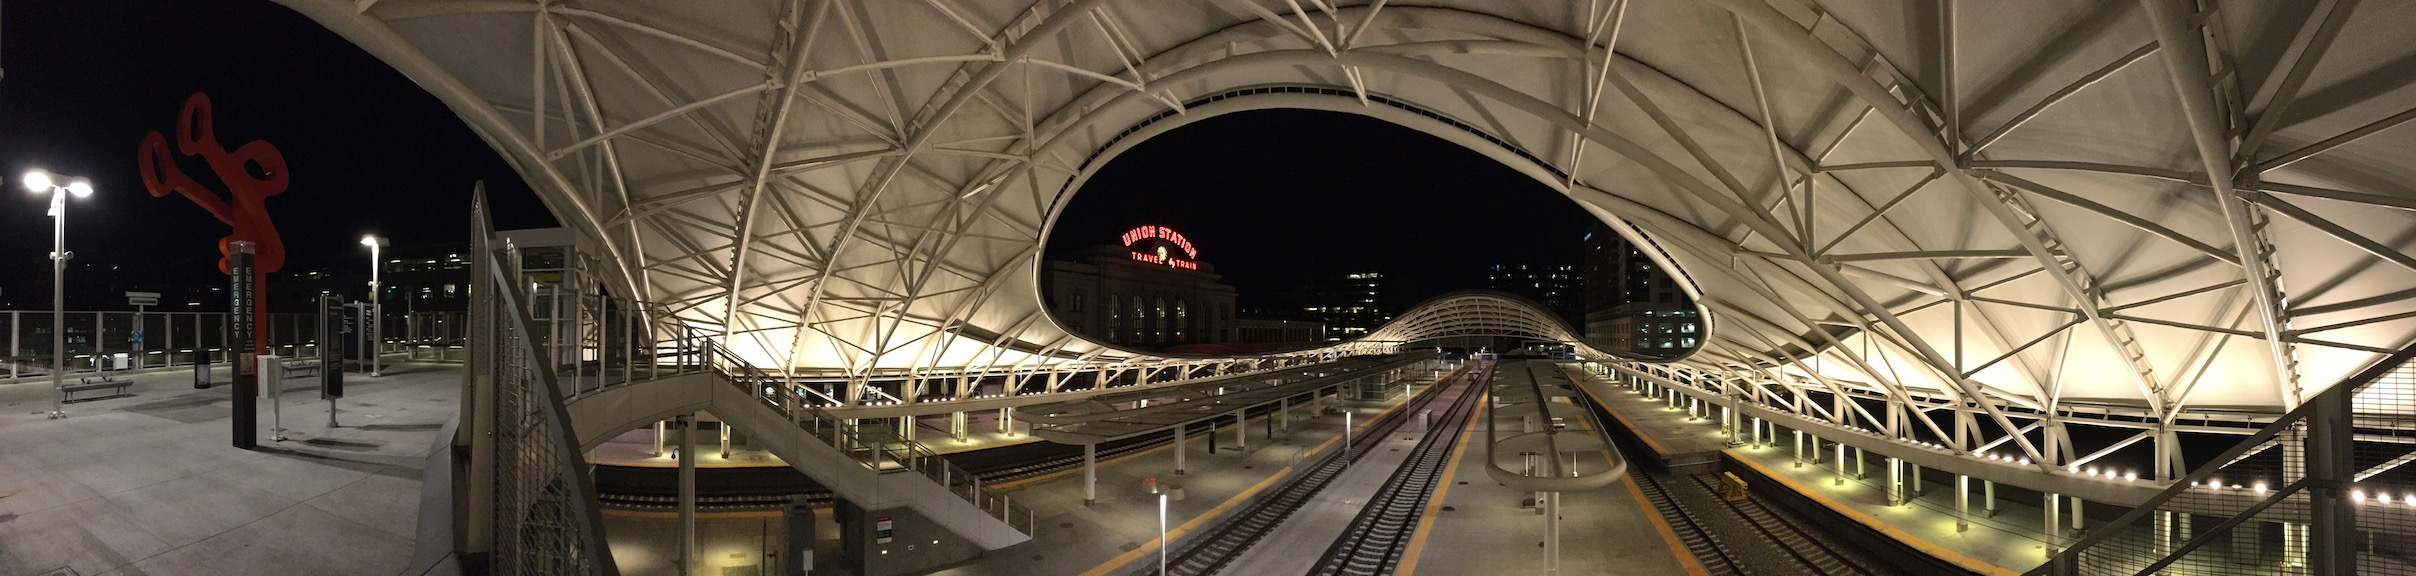 0349_Union_Station_Night